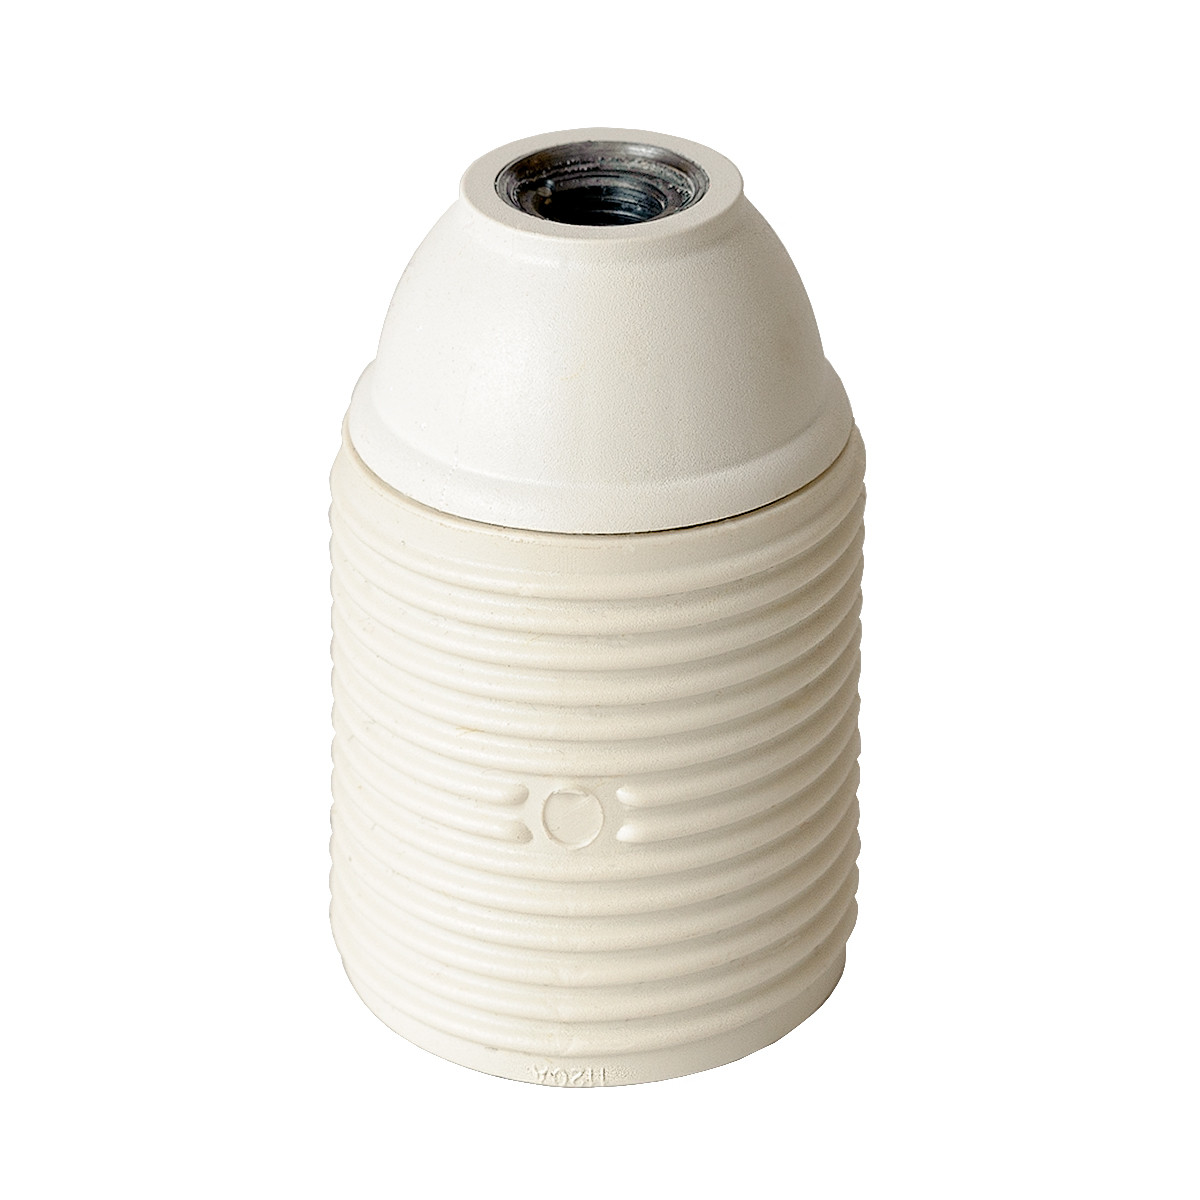 Plastic Lamp Holder E27 With External Thread White